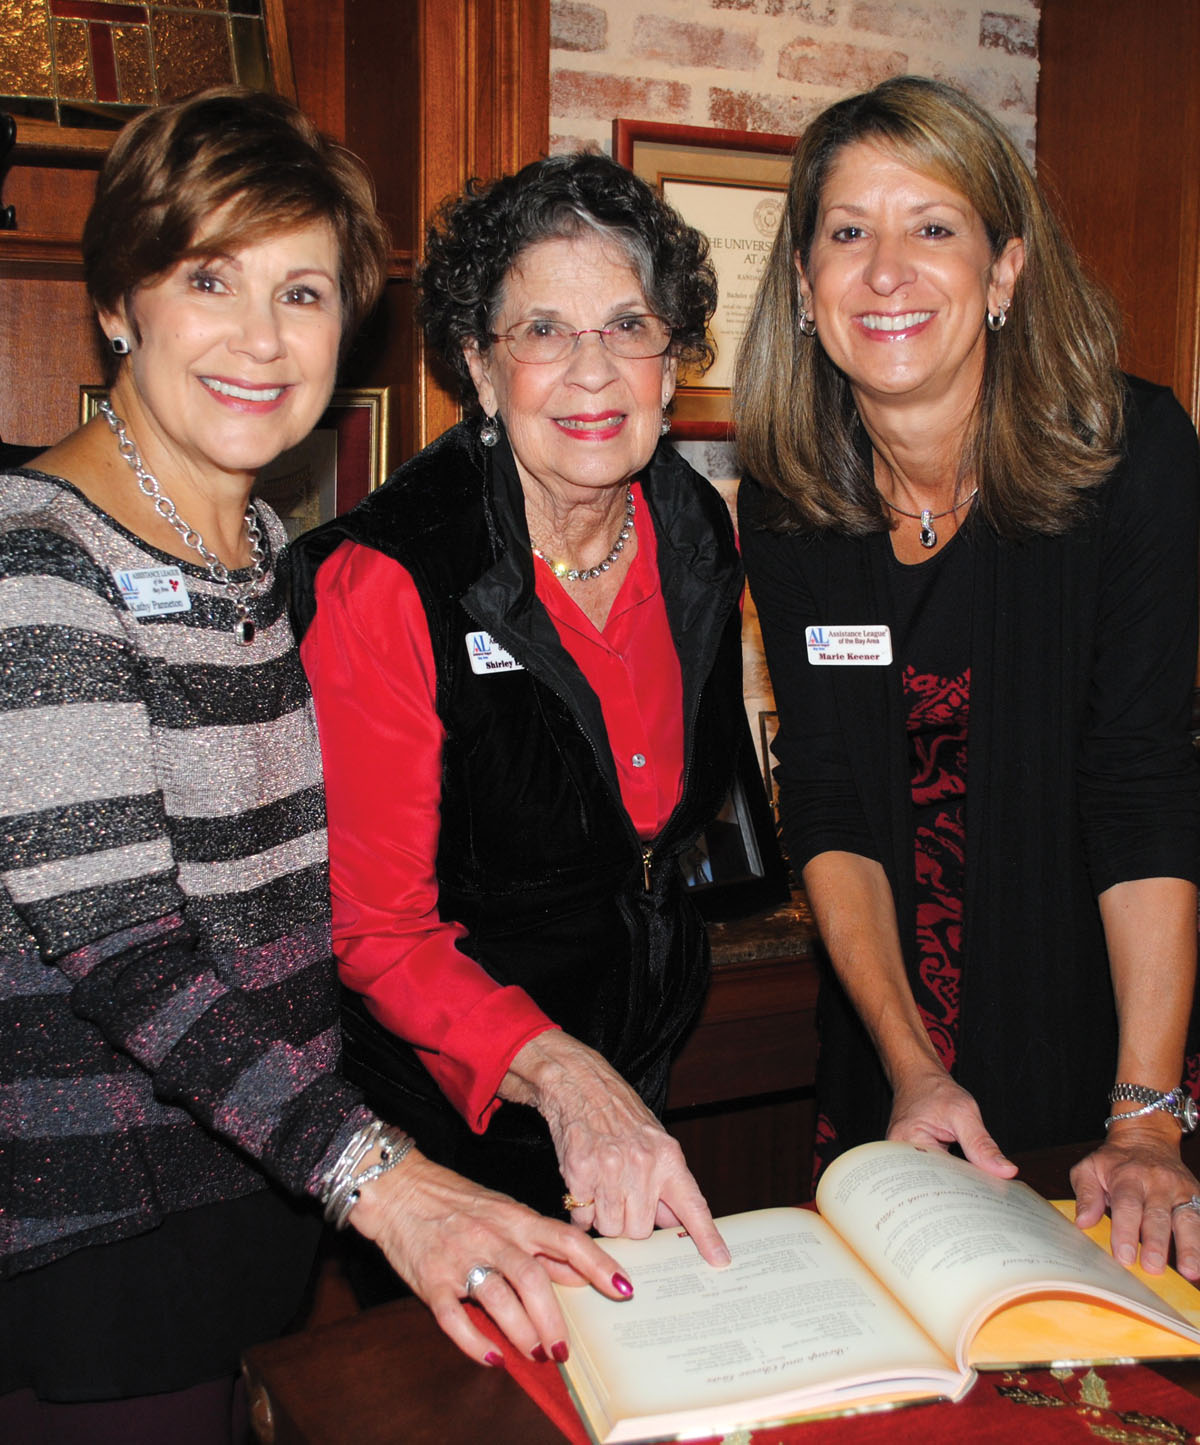 Assistance League members Kathy Panneton, Shirley Lang and Marie Keener, from left, look for a recipe in the League cookbook during Holiday Open House.